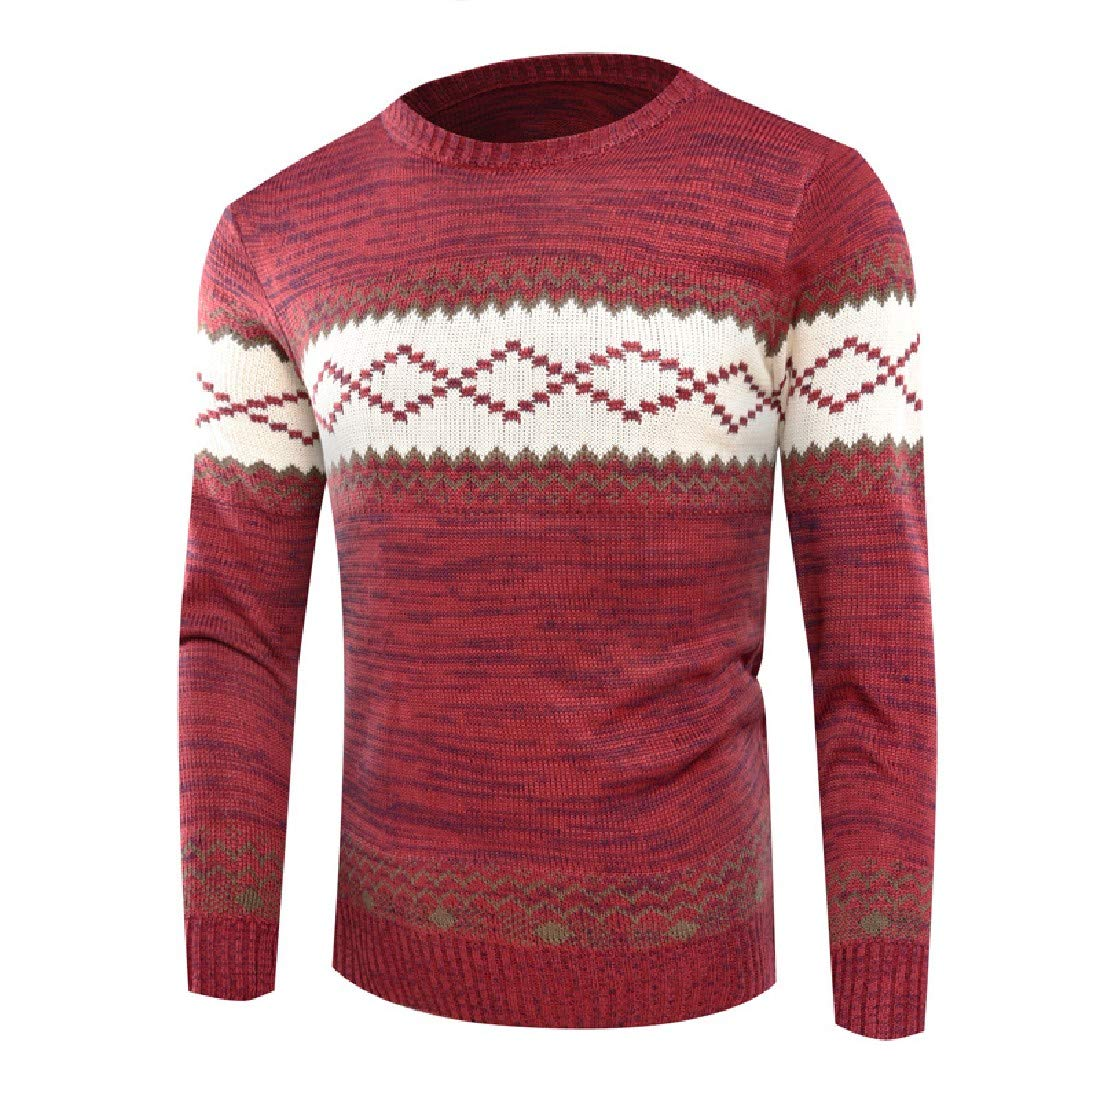 YUNY Men Crewneck Knitting Warm Ethnic Style Pullover Sweater Wine Red S